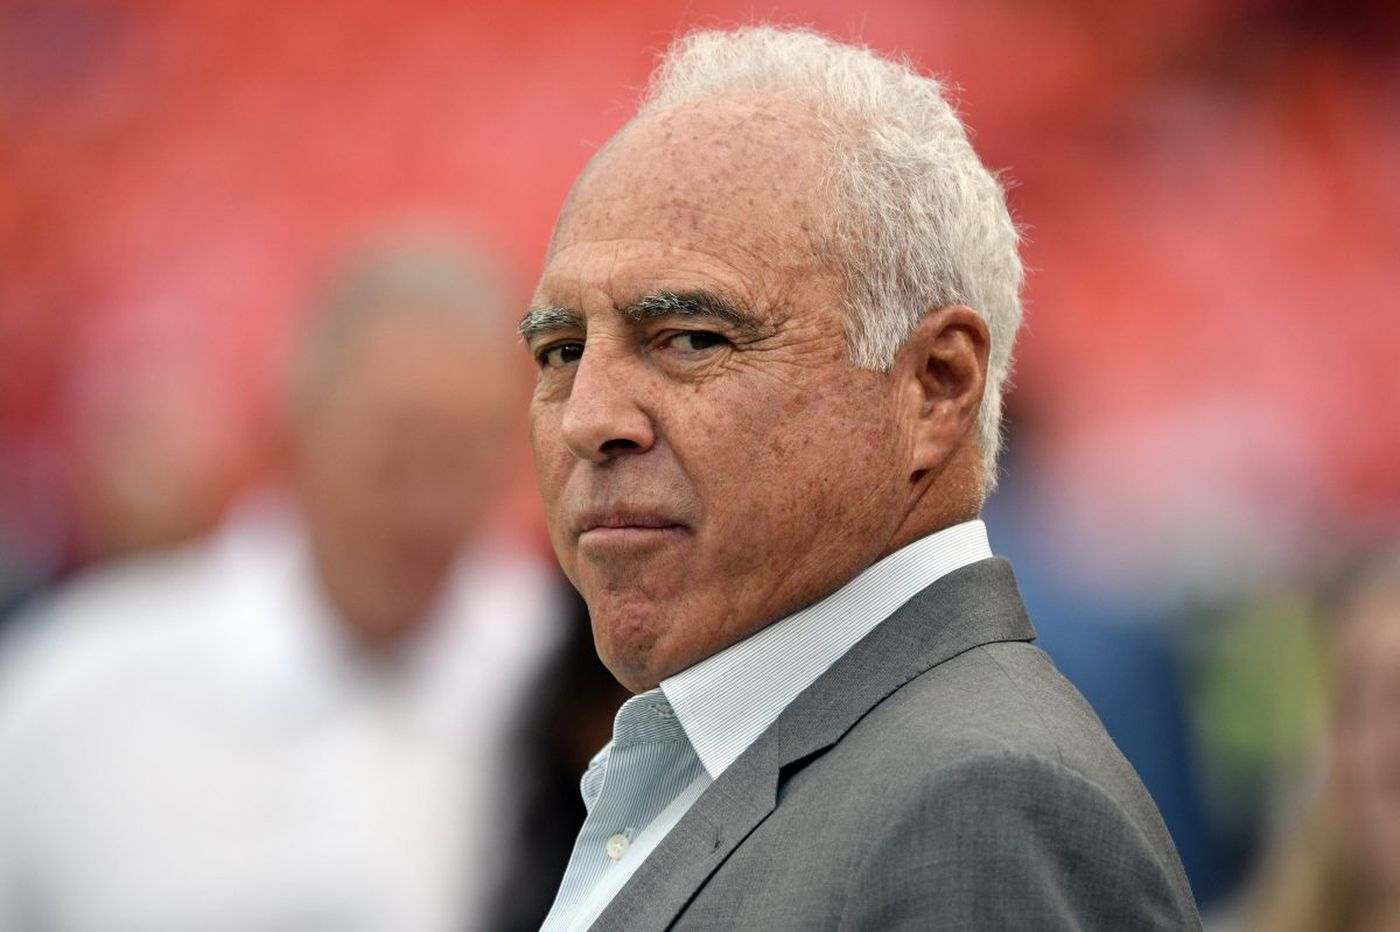 Eagles owner Jeffrey Lurie responds to Trump; Malcolm Jenkins calls on fans to lock arms